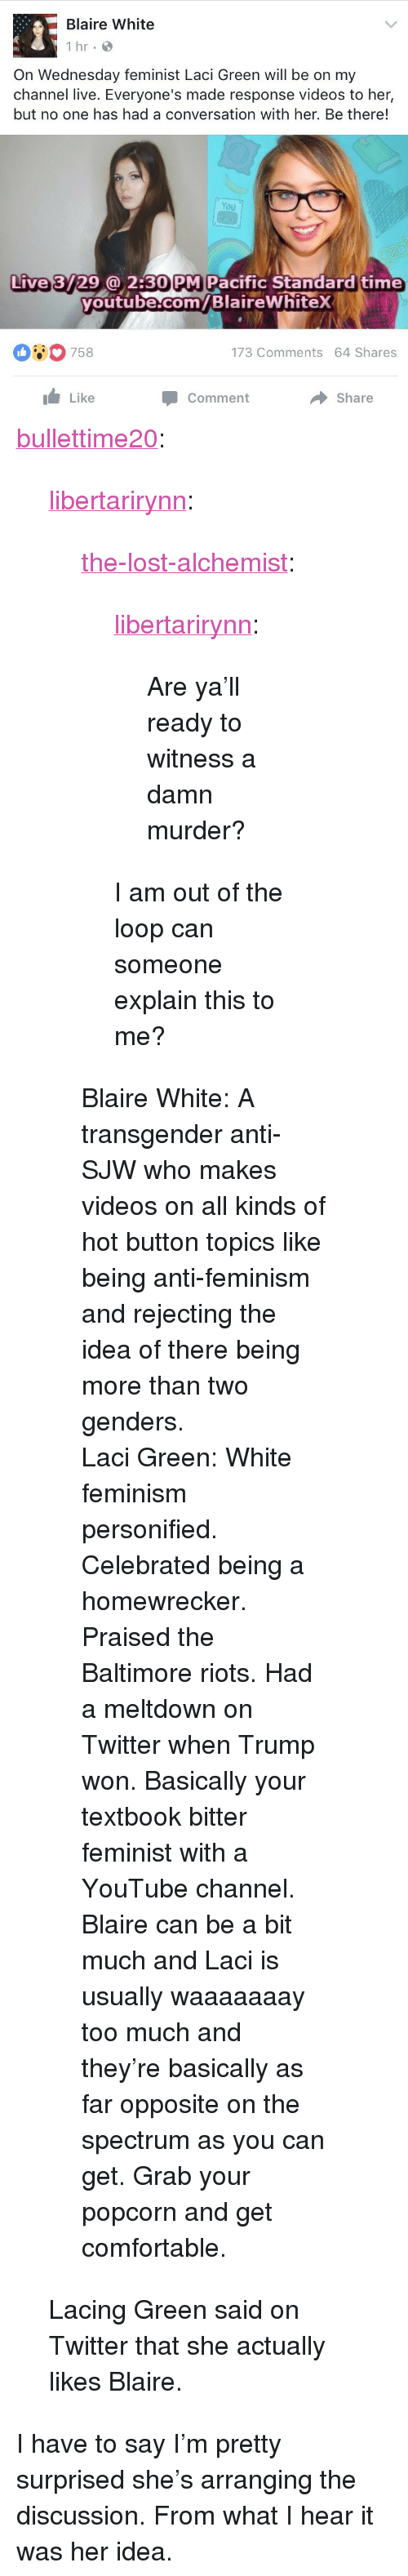 """Comfortable, Feminism, and Too Much: Blaire White  1 hr  On Wednesday feminist Laci Green will be on my  channel live. Everyone's made response videos to her,  but no one has had a conversation with her. Be there!  You  Live 3729@ 2:30 PM Pacific Standard time  youtube.com/BlaireWhitex  outube com  00758  173 Comments 64 Shares  Like  Share  Comment <p><a href=""""http://bullettime20.tumblr.com/post/158906449393/the-lost-alchemist-libertarirynn-are-yall"""" class=""""tumblr_blog"""">bullettime20</a>:</p>  <blockquote><p><a href=""""https://libertarirynn.tumblr.com/post/158905591739/the-lost-alchemist-libertarirynn-are-yall"""" class=""""tumblr_blog"""">libertarirynn</a>:</p>  <blockquote><p><a href=""""https://the-lost-alchemist.tumblr.com/post/158905360116/are-yall-ready-to-witness-a-damn-murder"""" class=""""tumblr_blog"""">the-lost-alchemist</a>:</p><blockquote> <p><a href=""""https://libertarirynn.tumblr.com/post/158903934169/are-yall-ready-to-witness-a-damn-murder"""" class=""""tumblr_blog"""">libertarirynn</a>:</p>  <blockquote><p>Are ya'll ready to witness a damn murder?</p></blockquote>  <p>I am out of the loop can someone explain this to me?</p> </blockquote> <p>Blaire White: A transgender anti-SJW who makes videos on all kinds of hot button topics like being anti-feminism and rejecting the idea of there being more than two genders.</p><p>Laci Green: White feminism personified. Celebrated being a homewrecker. Praised the Baltimore riots. Had a meltdown on Twitter when Trump won. Basically your textbook bitter feminist with a YouTube channel. </p><p>Blaire can be a bit much and Laci is usually waaaaaaay too much and they're basically as far opposite on the spectrum as you can get. Grab your popcorn and get comfortable. </p></blockquote>  <p>Lacing Green said on Twitter that she actually likes Blaire.</p></blockquote>  <p>I have to say I&rsquo;m pretty surprised she&rsquo;s arranging the discussion. From what I hear it was her idea.</p>"""